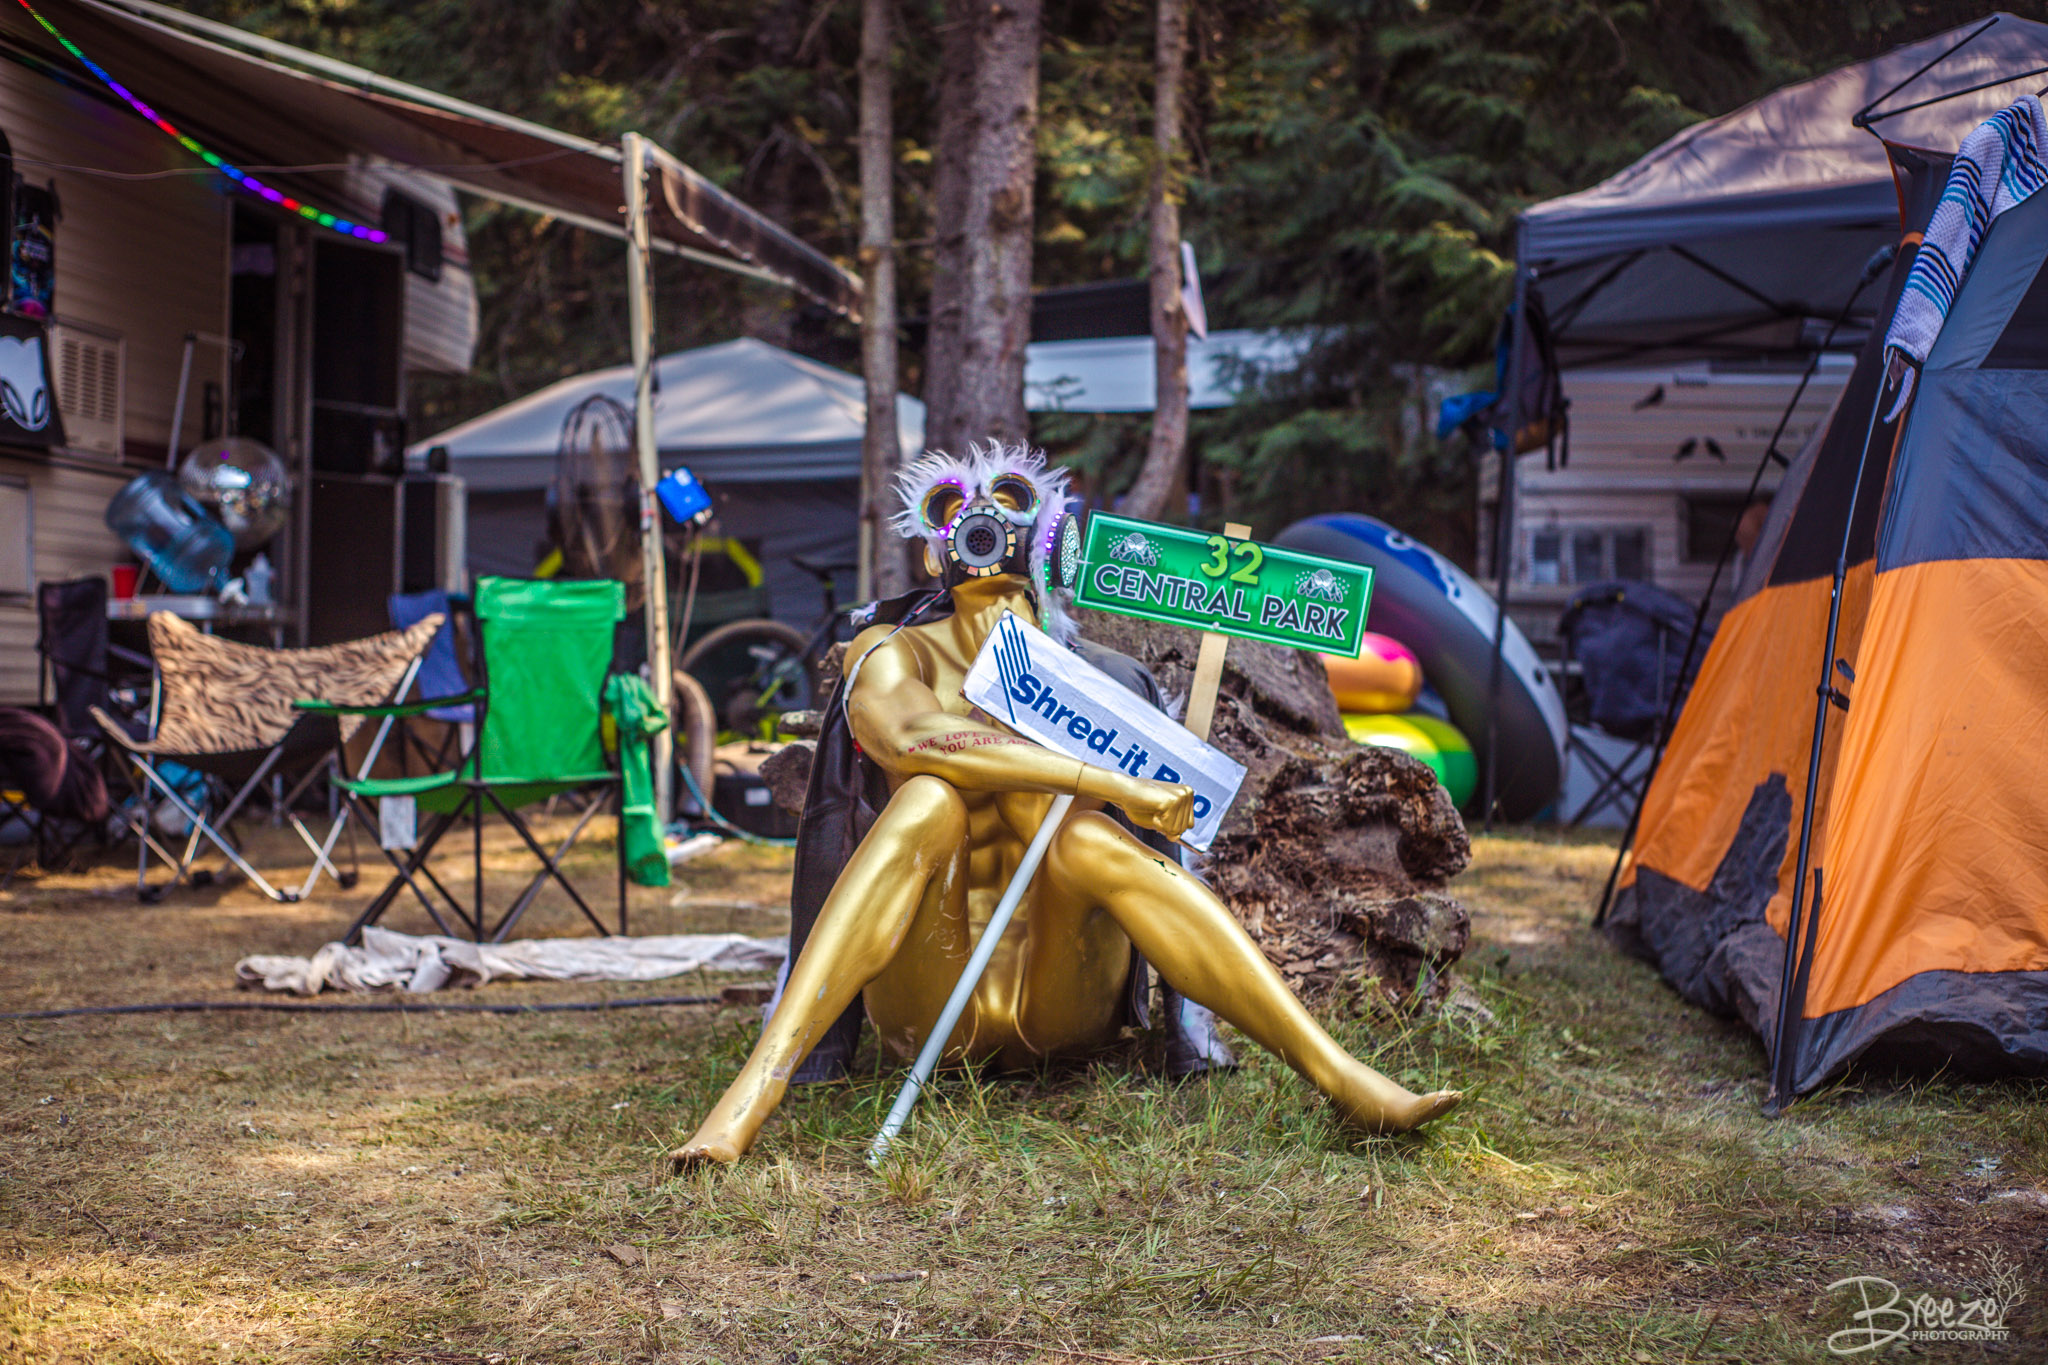 Brie'Ana Breeze Photography & Media - Shambhala 2018-0464.jpg